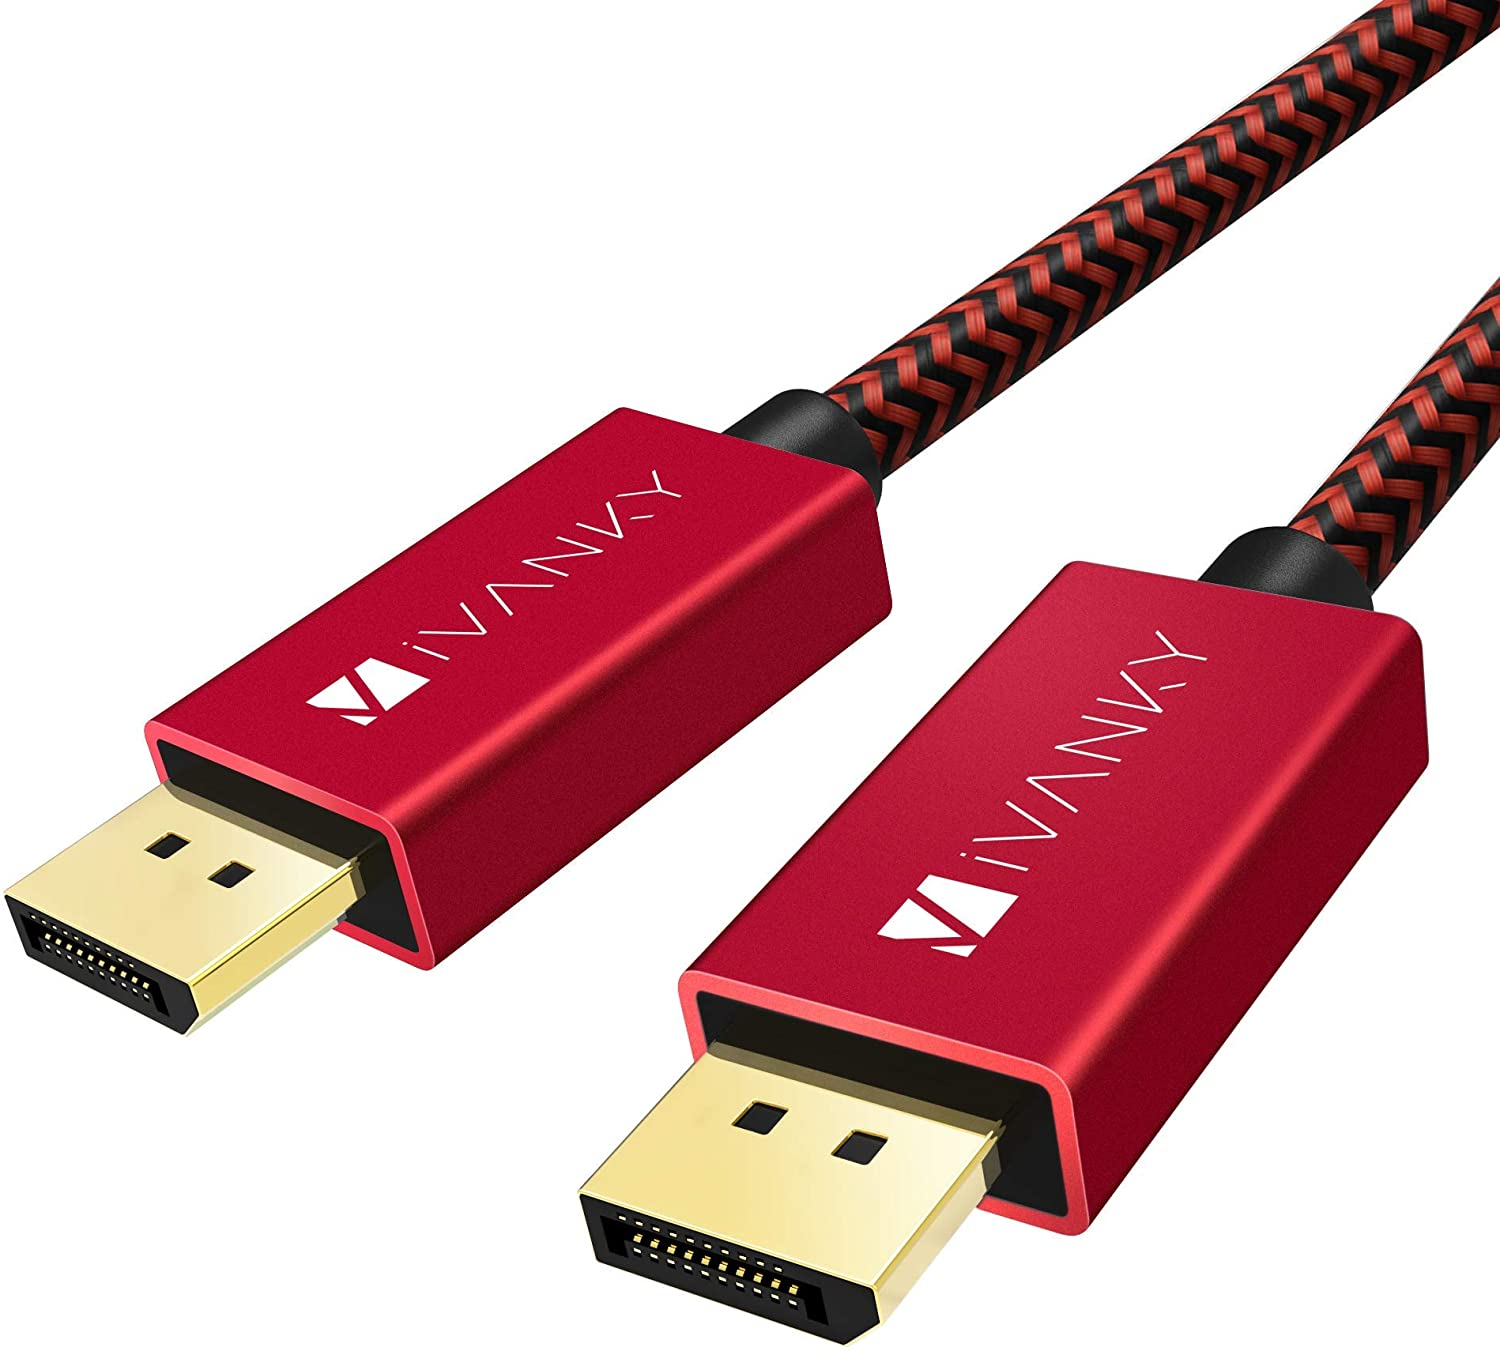 DisplayPort 1.2 Cable 6.6ft, iVANKY 4K DisplayPort to DisplayPort Cable Nylon Braided, High Speed DP Cable, Supports 4K@60Hz and 2K@165Hz, Compatible with PC, Laptop, TV - Red